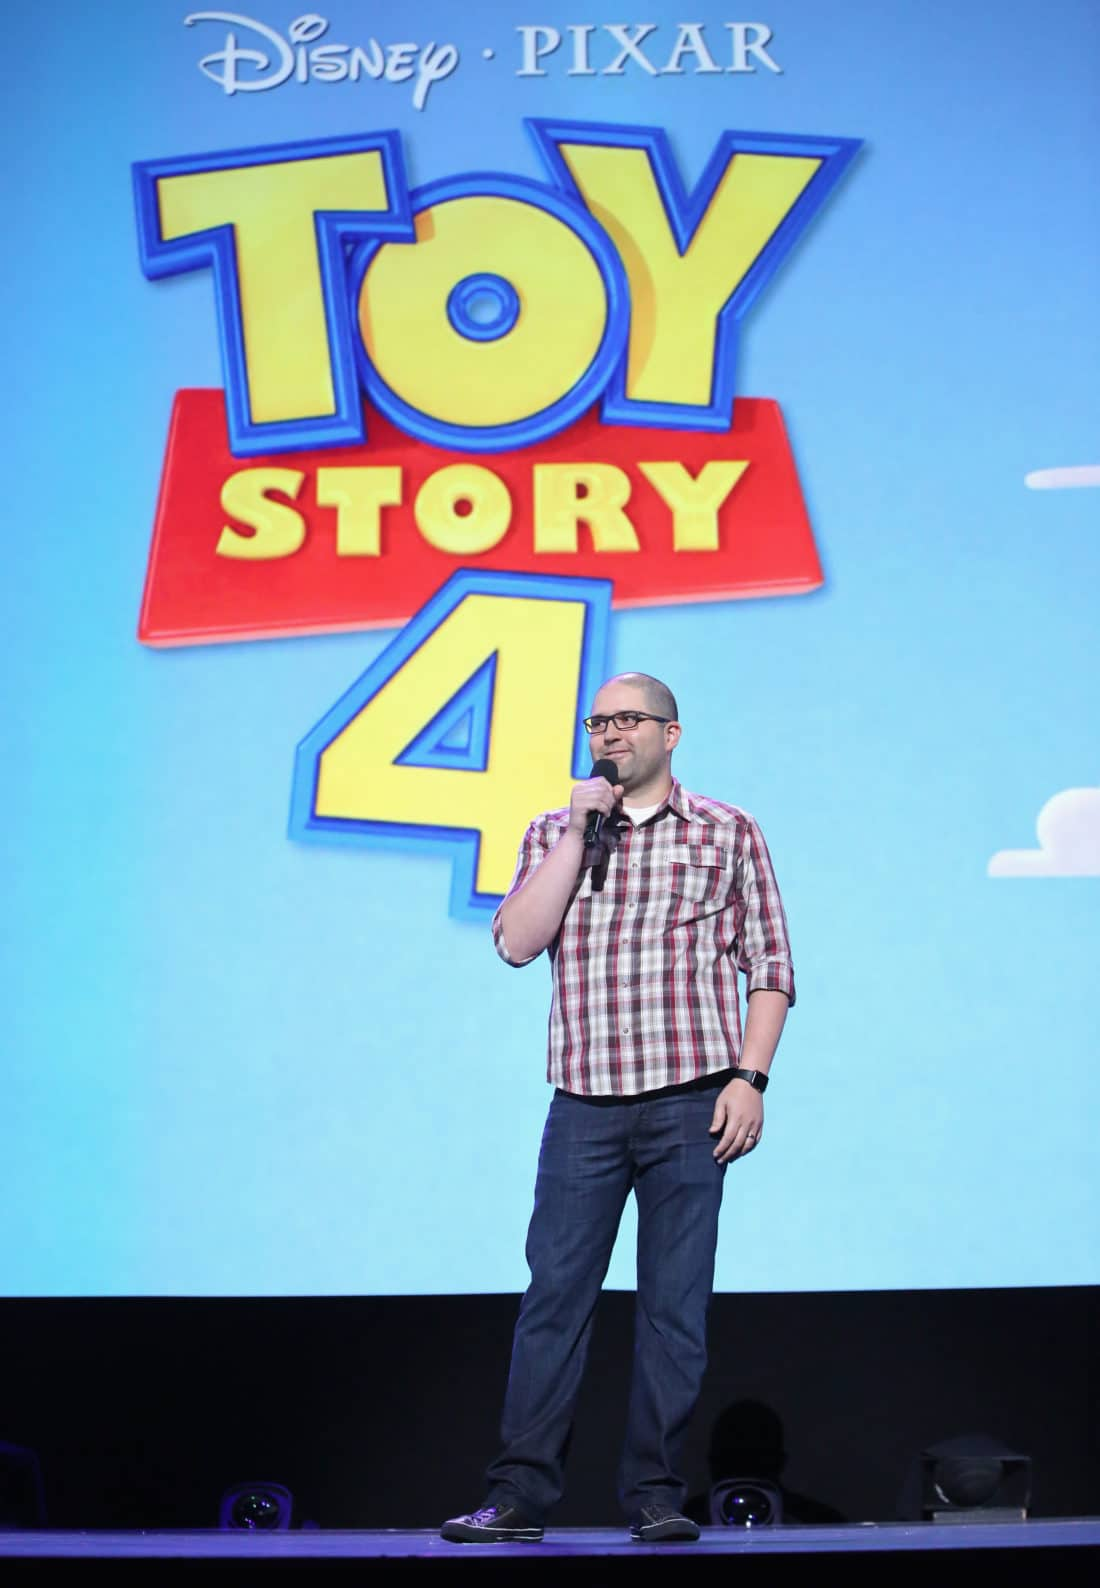 Director Josh Cooley of TOY STORY 4 took part today in the Walt Disney Studios animation presentation at Disney's D23 EXPO 2017 in Anaheim, Calif. TOY STORY 4 will be released in U.S. theaters on June 21, 2019.